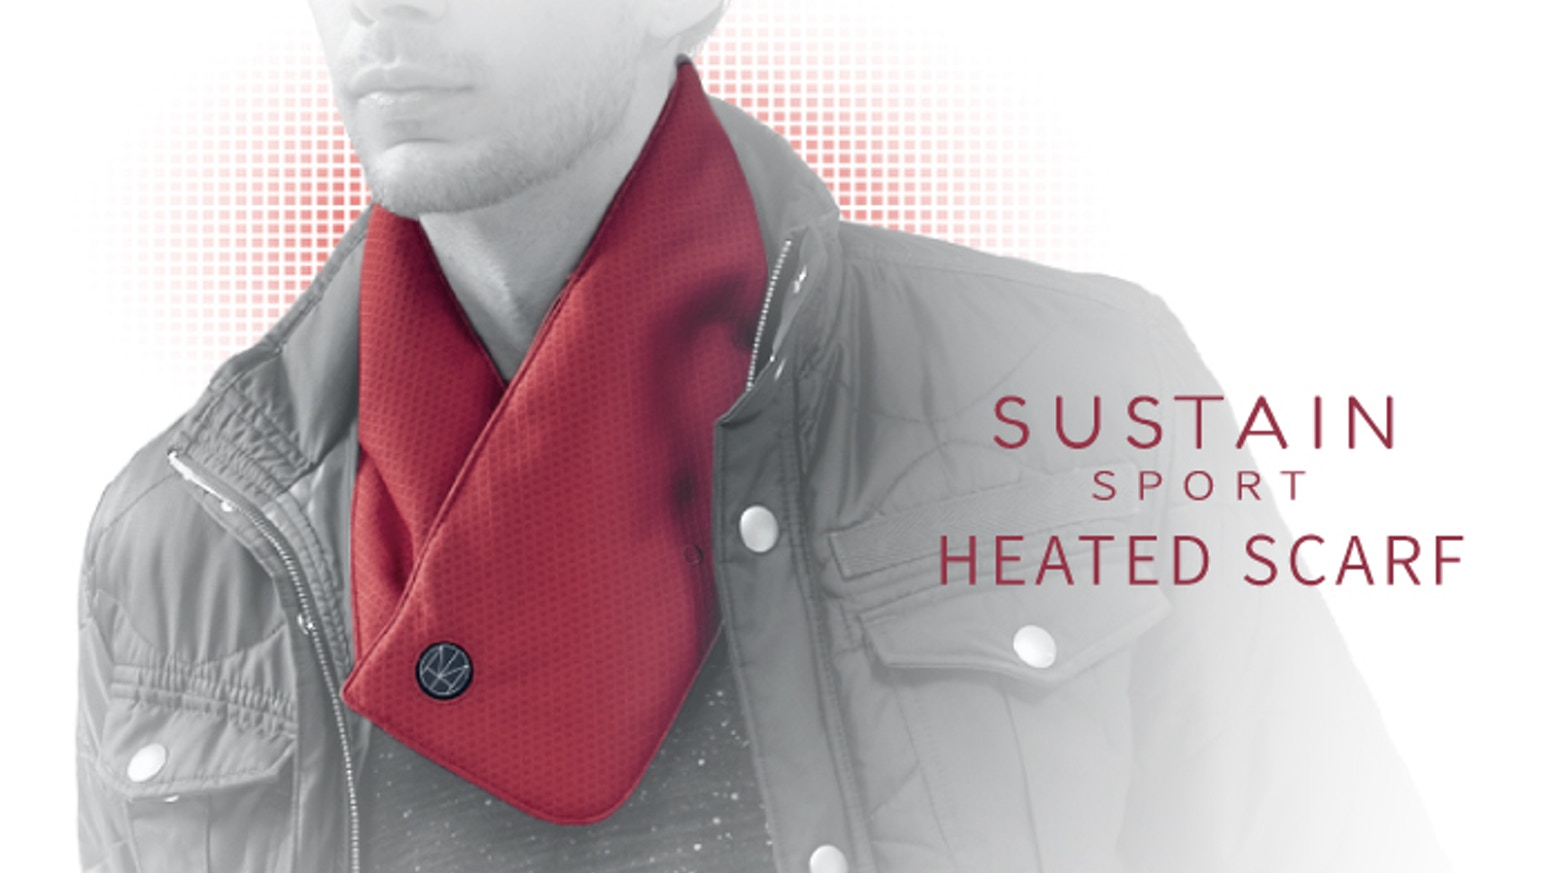 Portable warmth|Instant heat|2 heat settings|Silver nano fabrics|Far-infra red emission